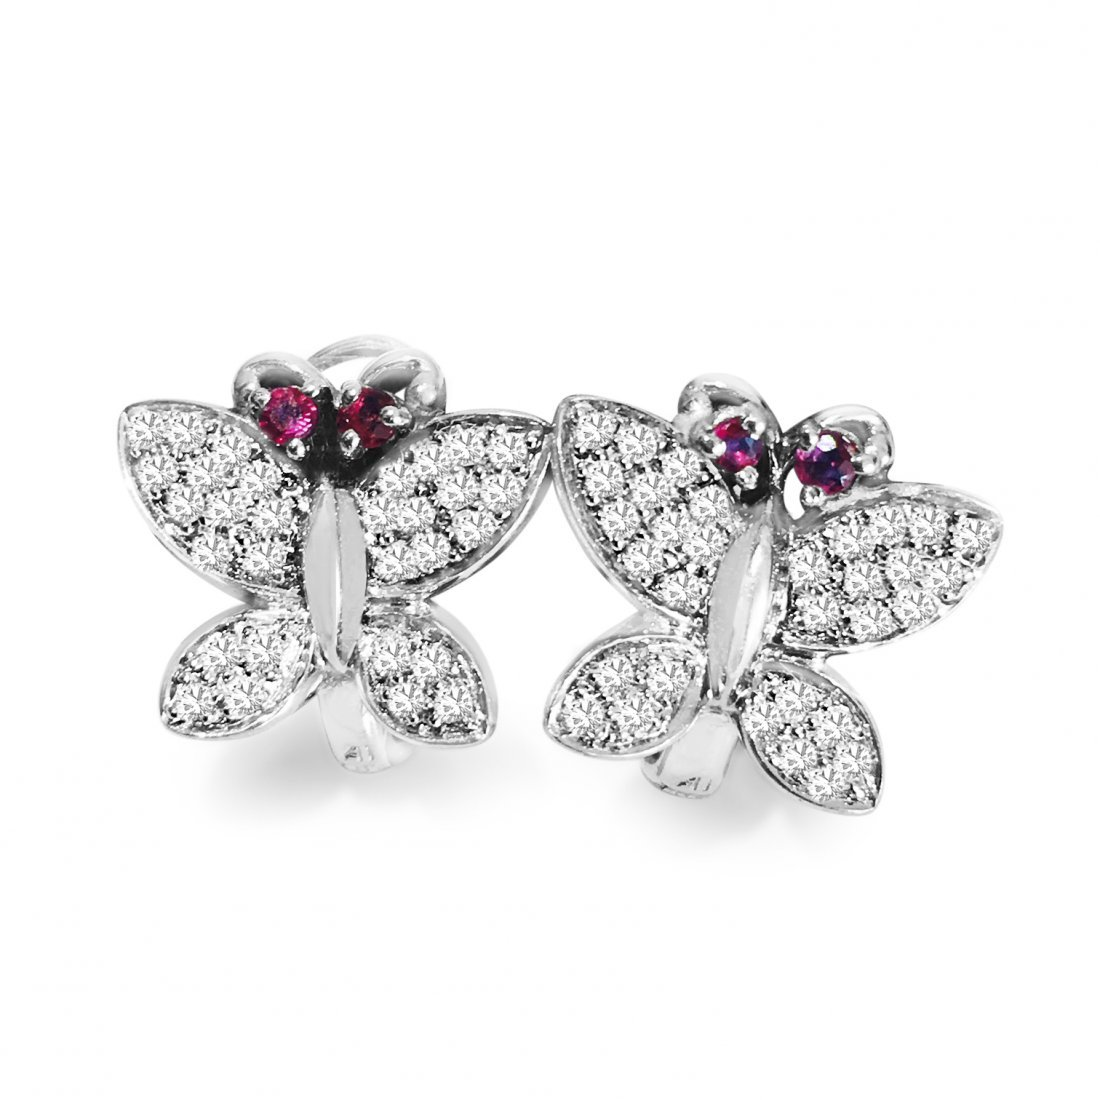 14k Gold 1.30 Carat Diamond and Ruby Butterfly Earrings